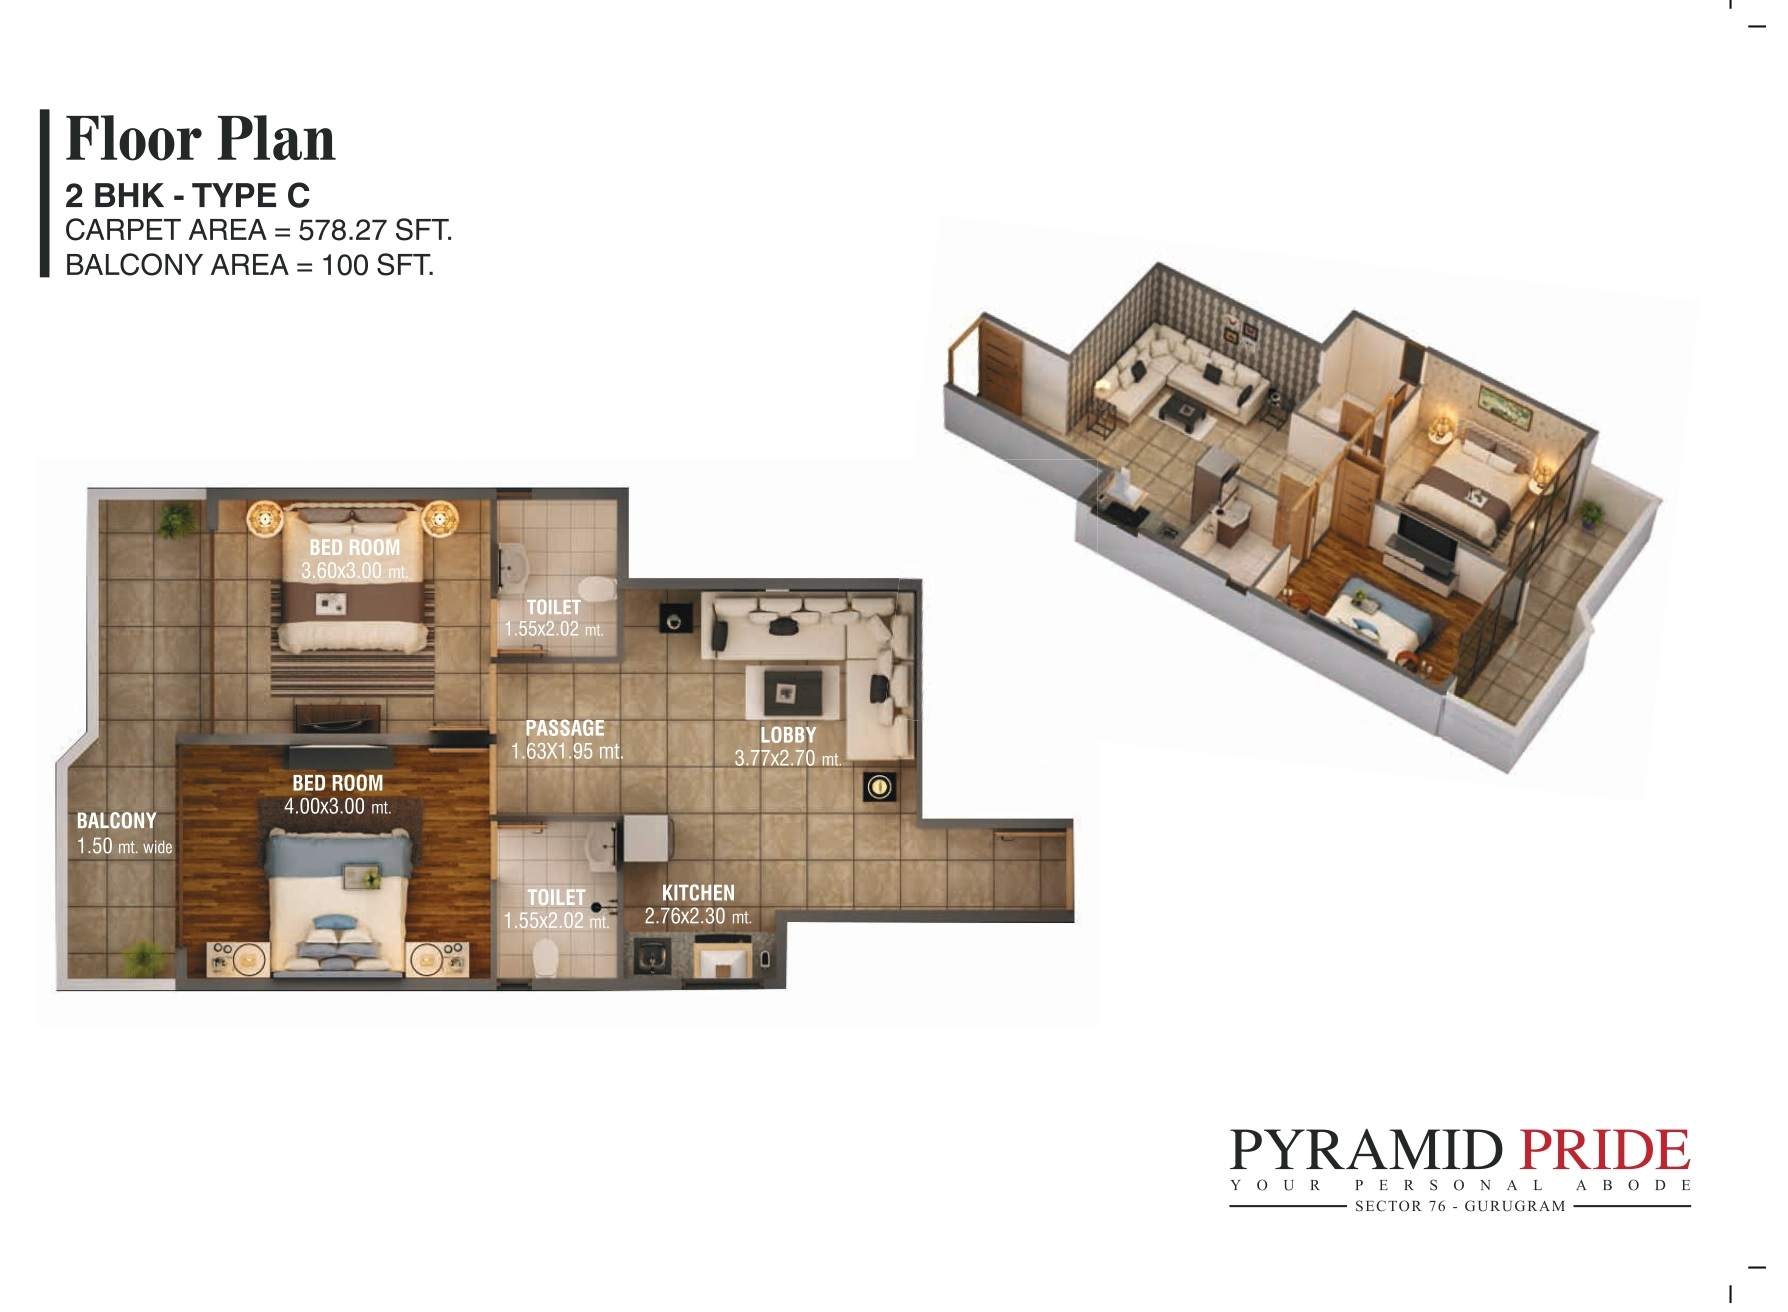 Pyramid Pride Sector 76 Gurgaon Affordable Housing